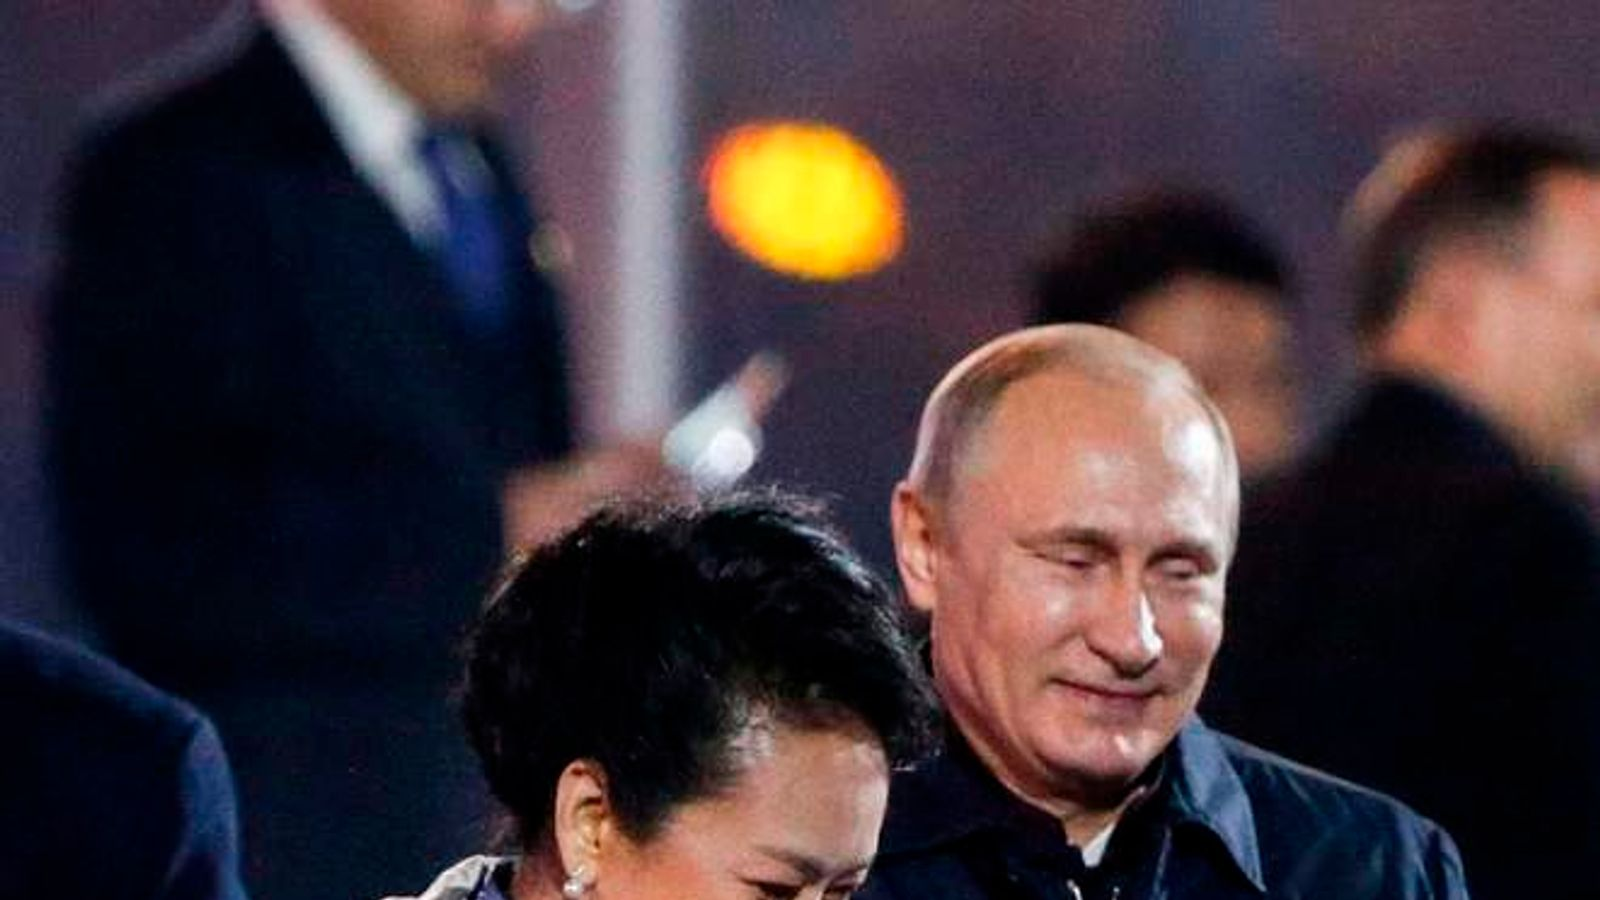 Russia's President Putin helps put a blanket on Peng, wife of China's President Xi, in Beijing